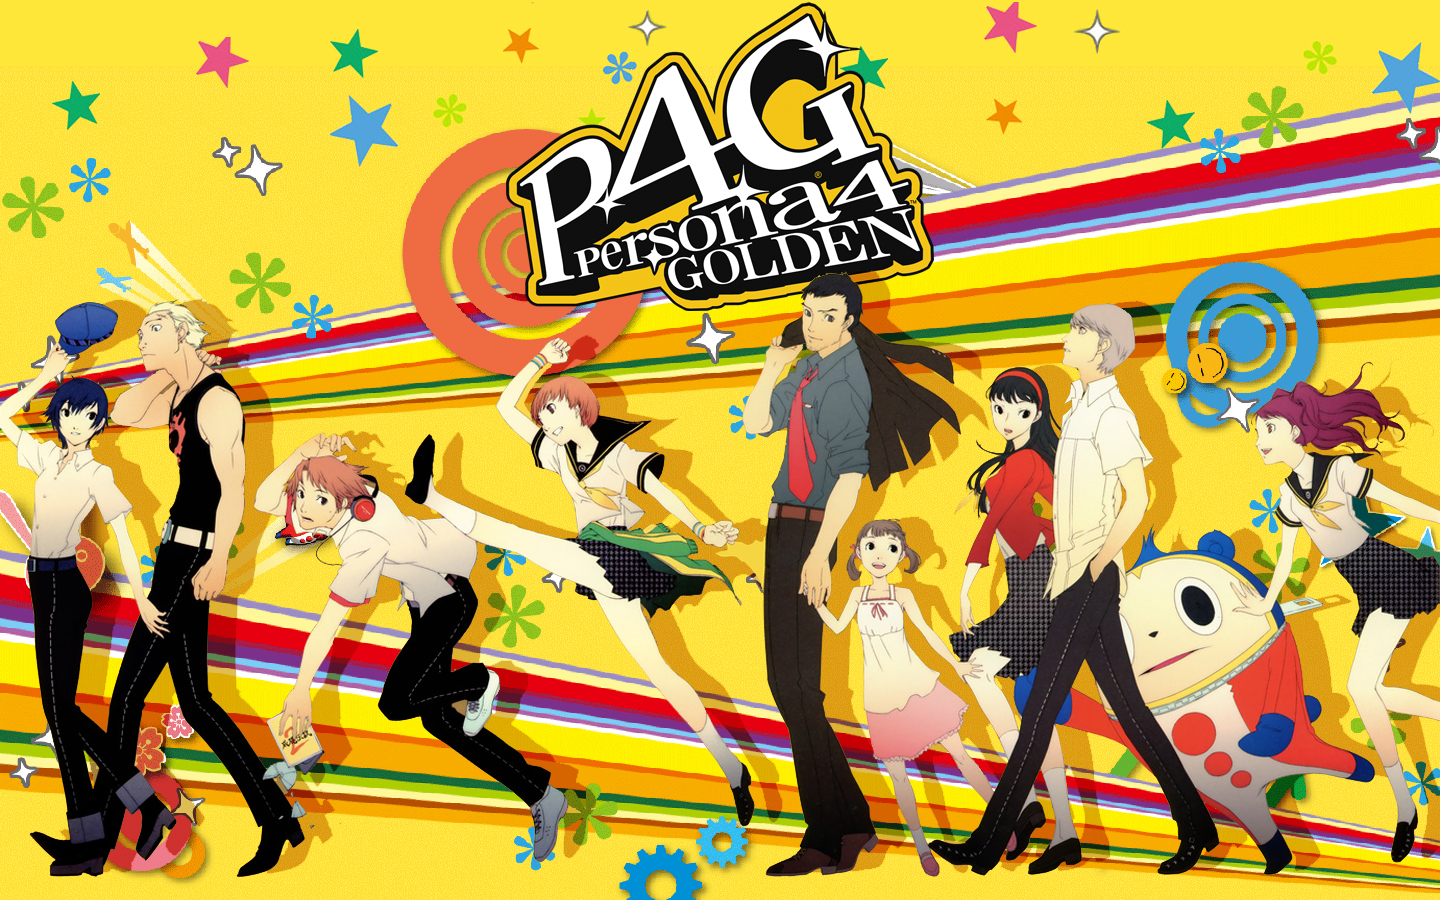 p4g_cast-wallpaper-14d5y50